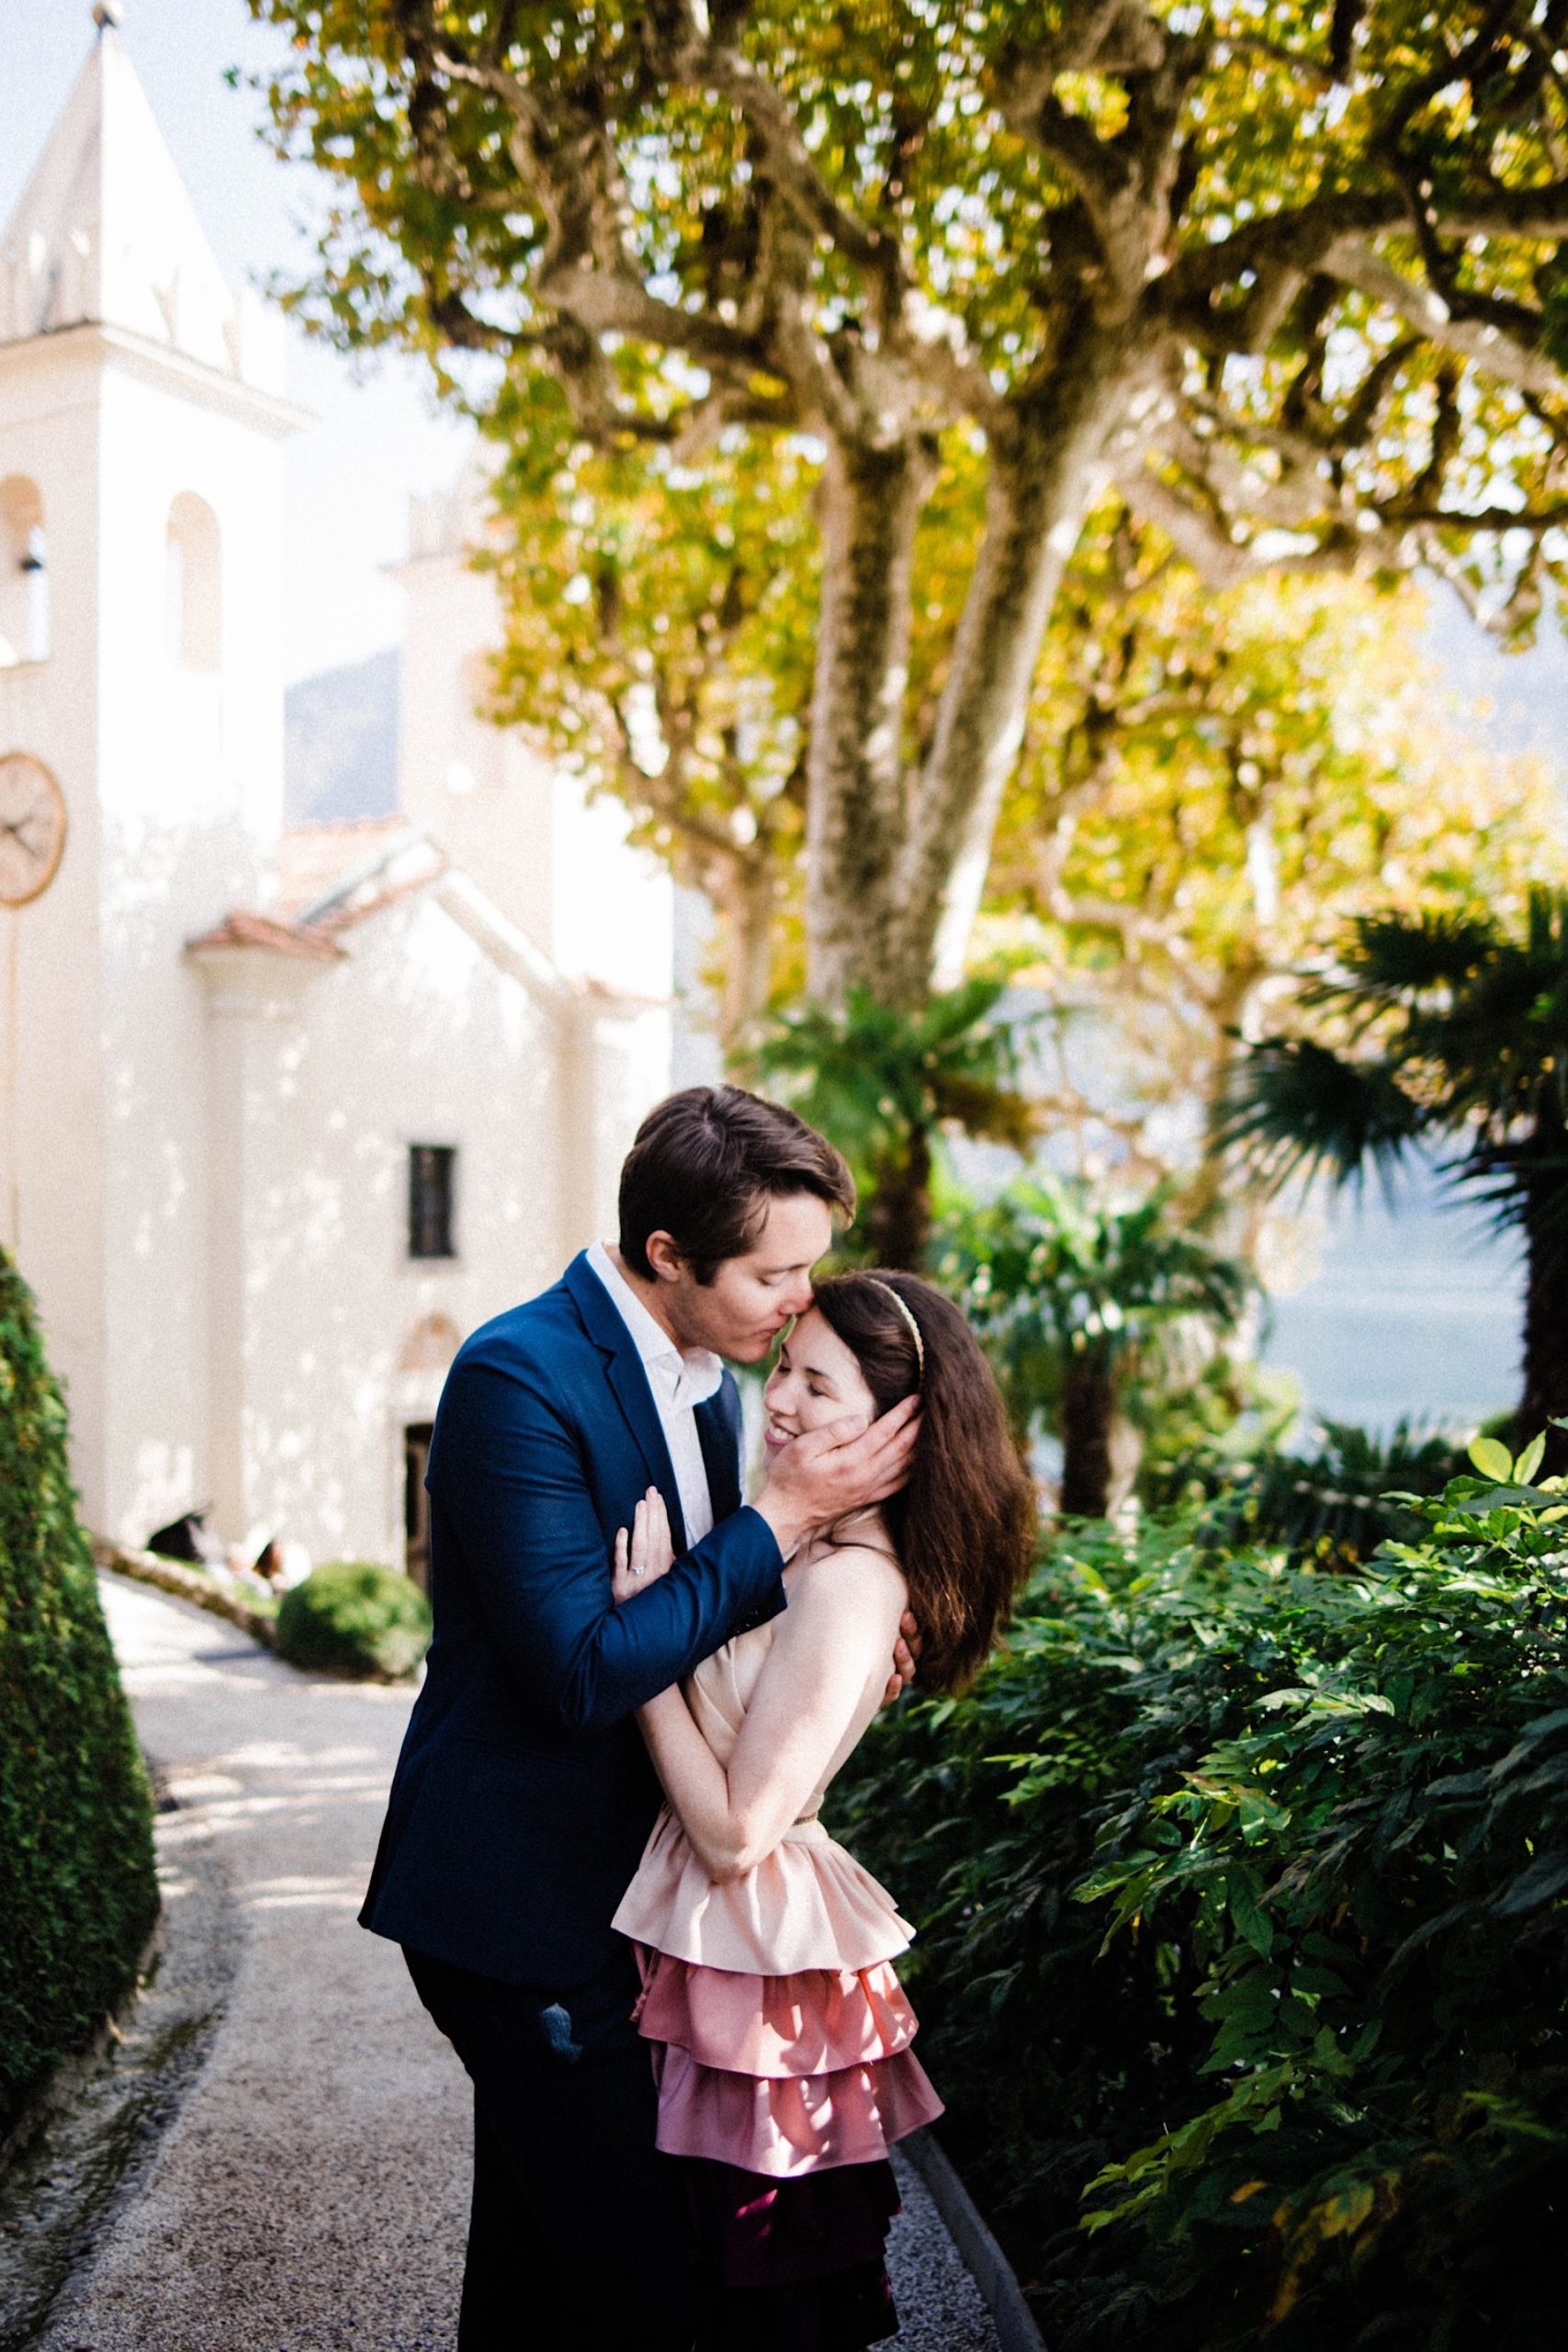 A portrait photograph of a couple standing together, sharing a kiss, in the gardens at Villa Balbianello.